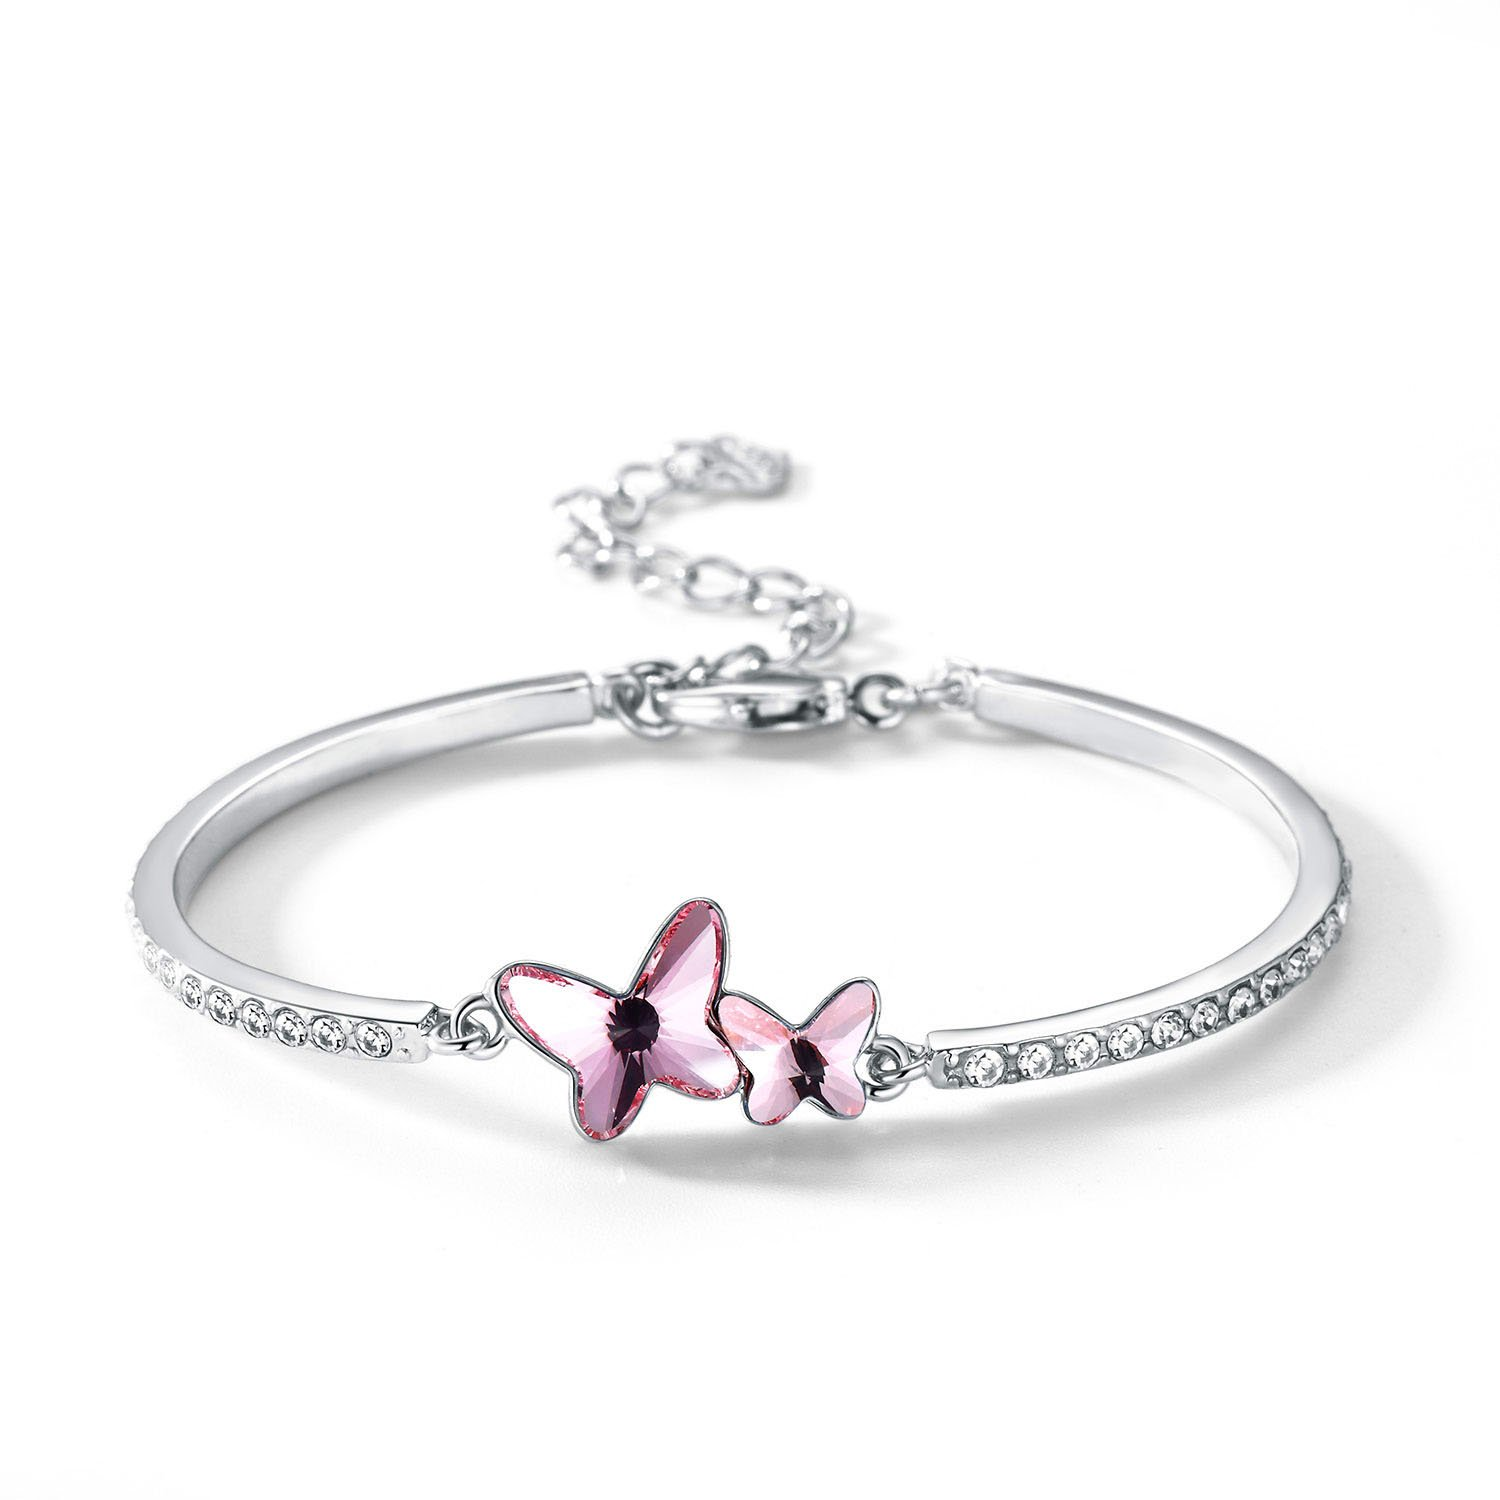 T400 Jewelers Dream Chasers Love Gift Swarovski Elements Crystal Butterfly Bangle Bracelet Women's Jewerly Eco Alloy) 3318207